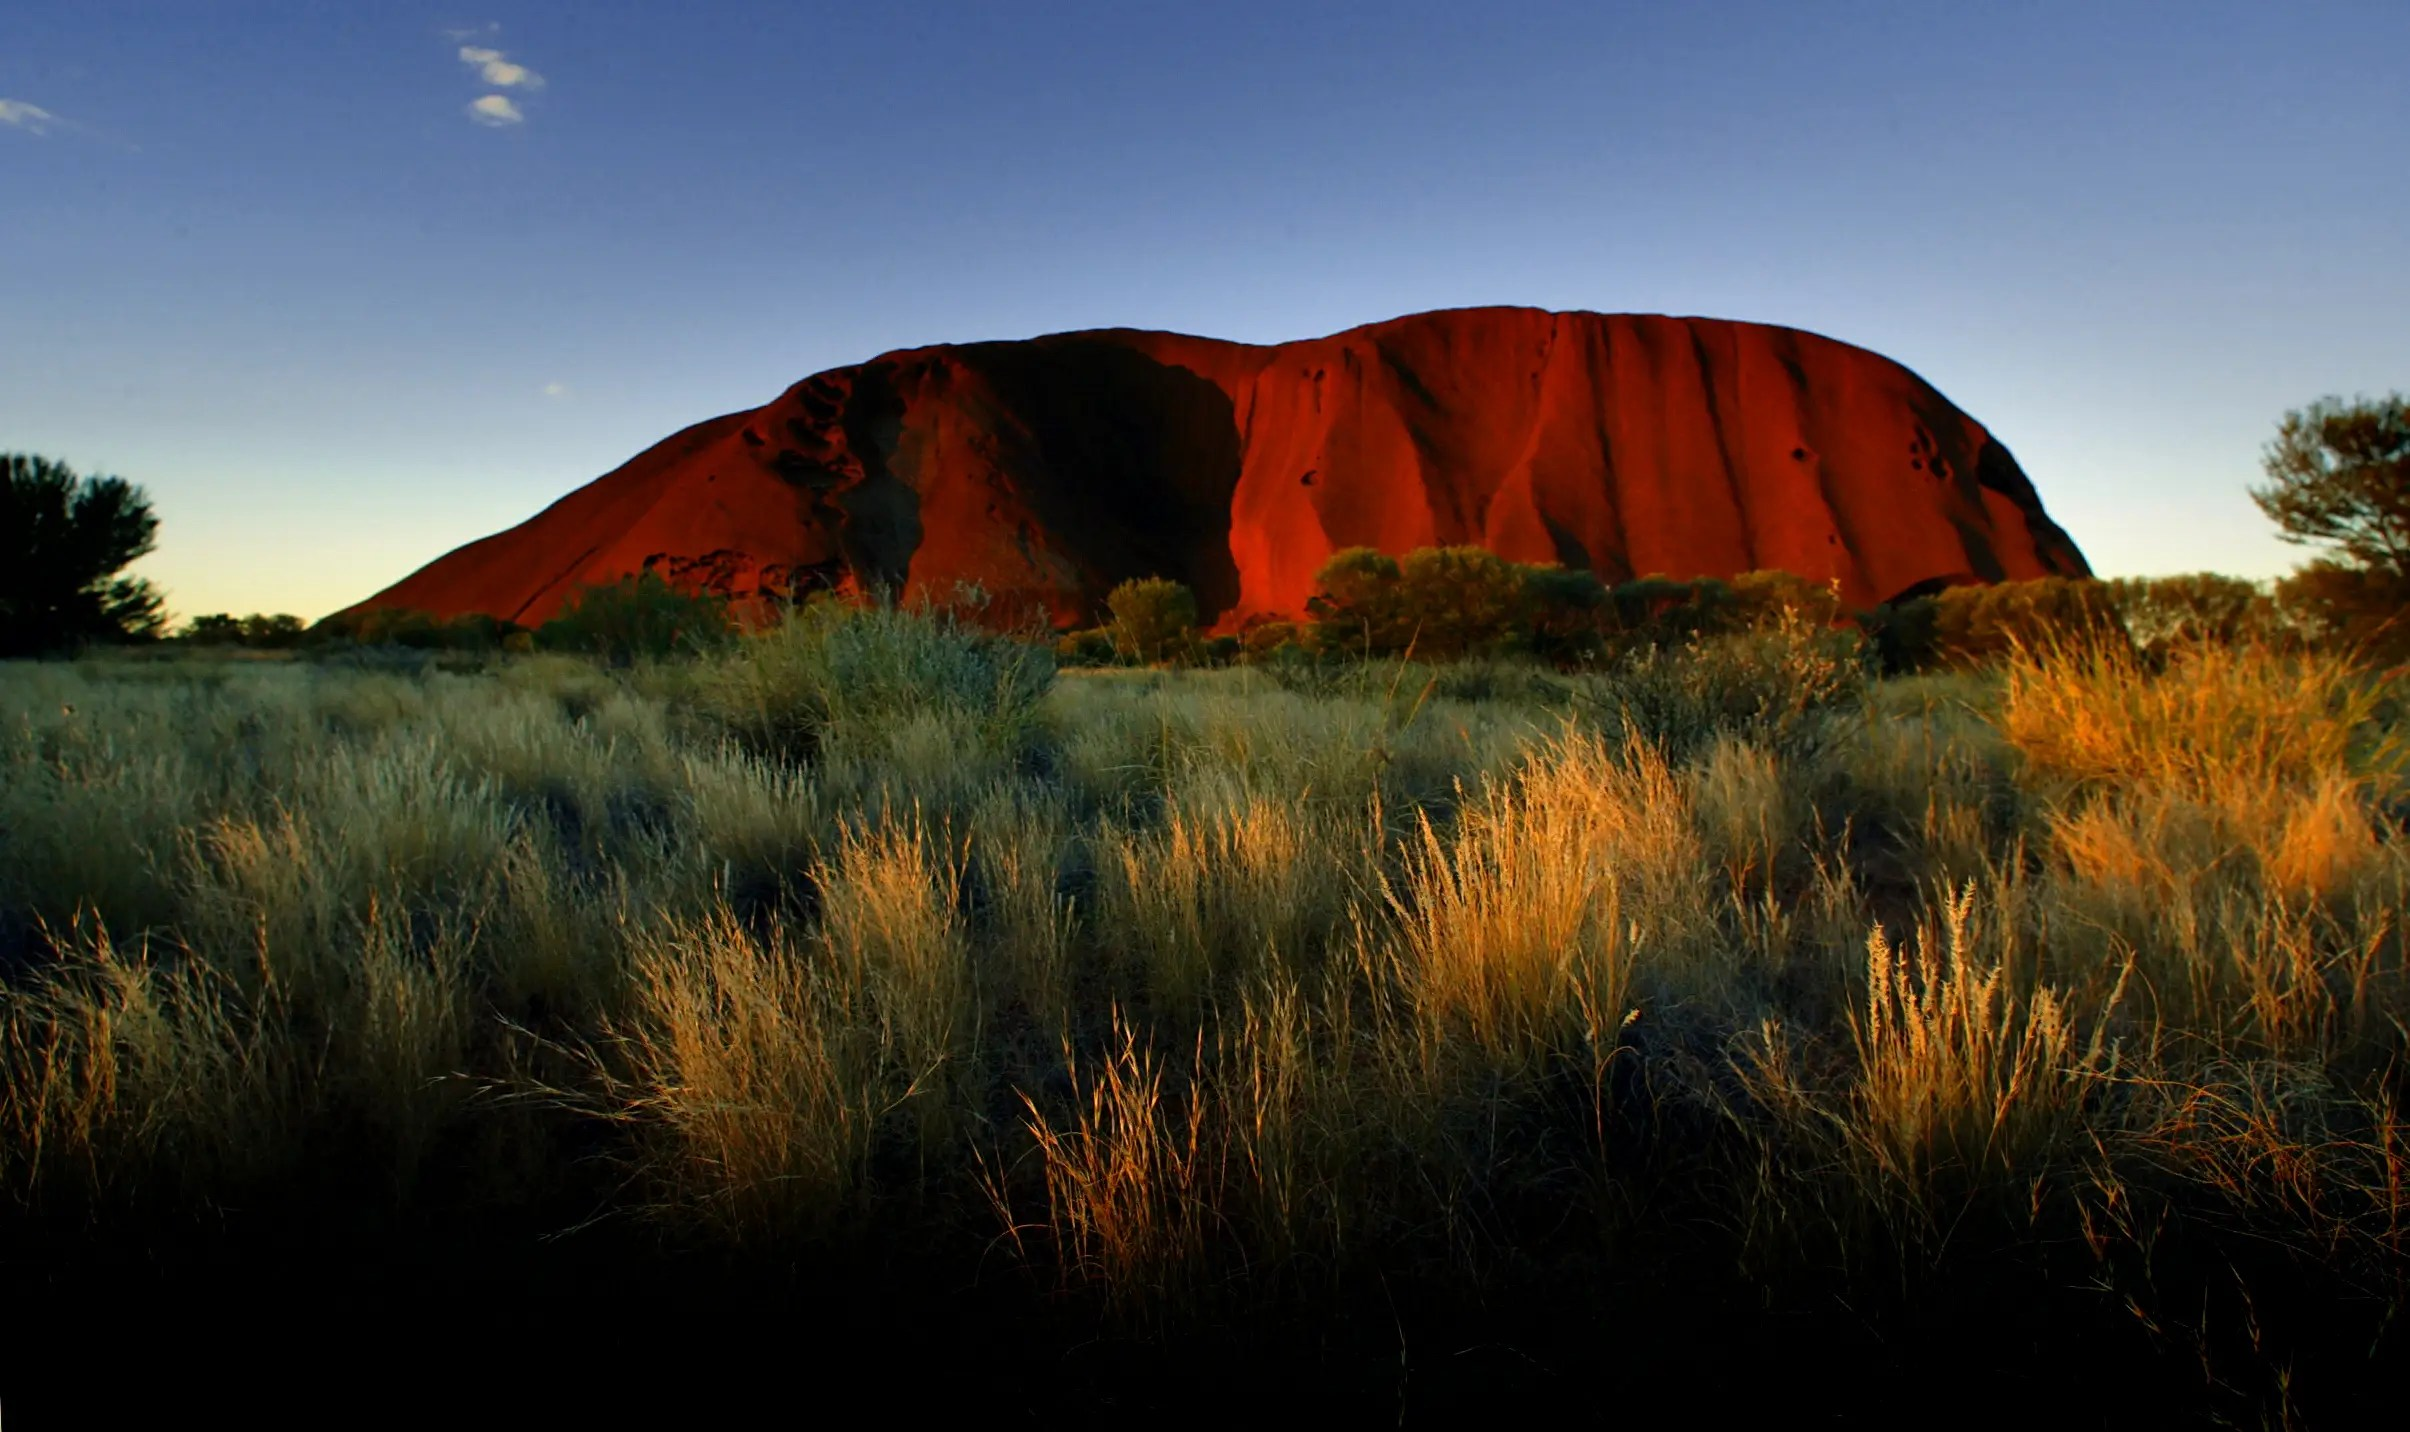 The sun sets on Ayers Rock, one of Australia's major tourist destinations, attracting 400,000 visitors every year.